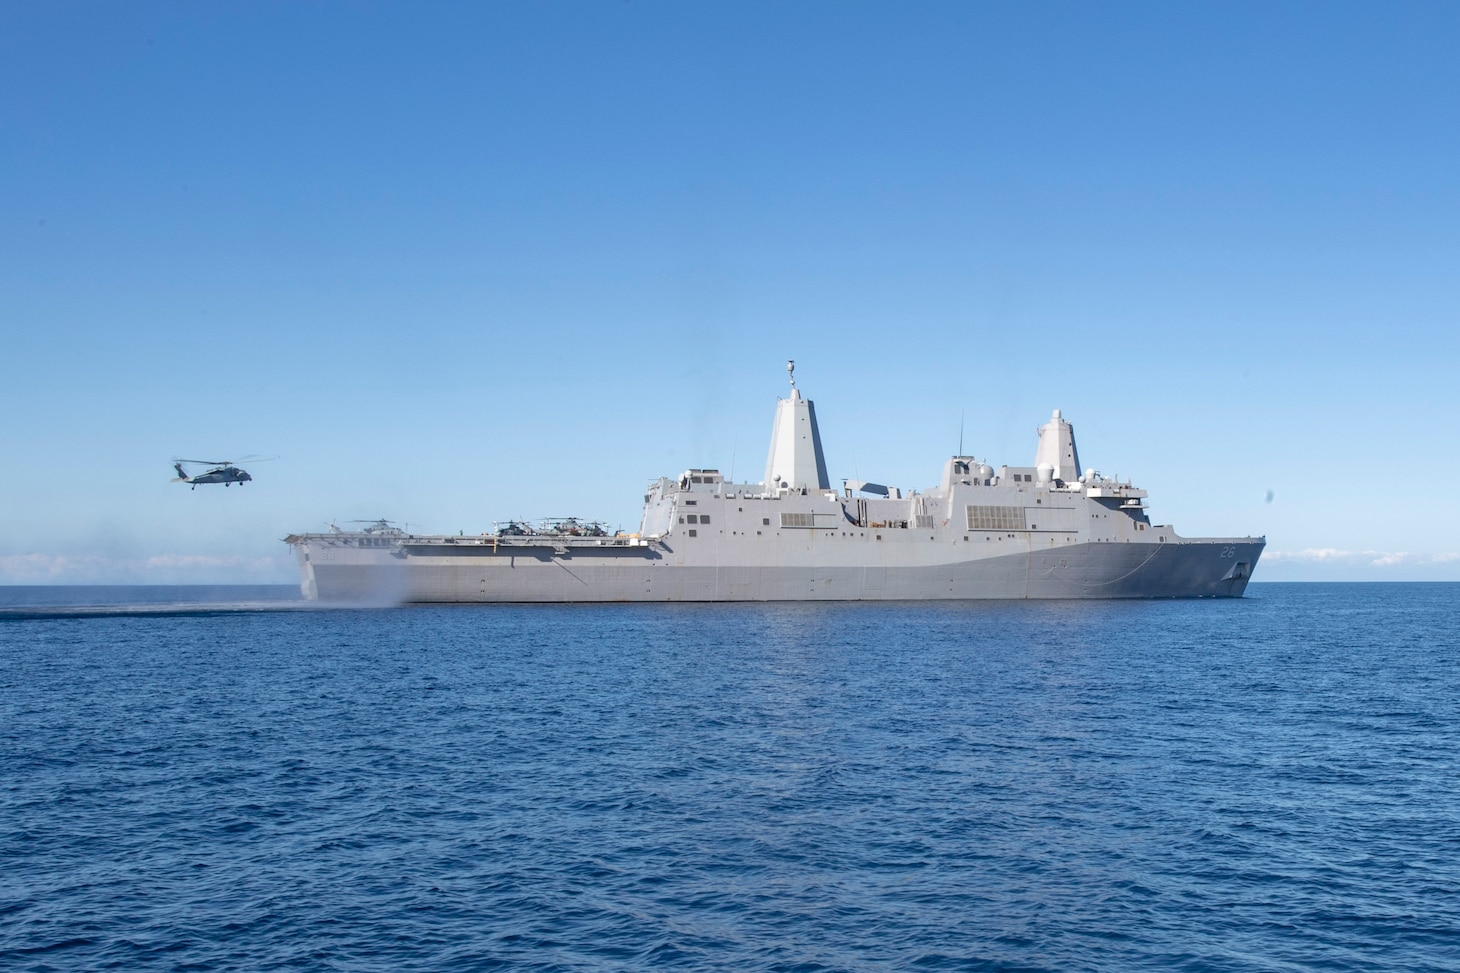 John P. Murtha is underway conducting routine operations as a part of USS Boxer Amphibious Ready Group (ARG) in the eastern Pacific Ocean.